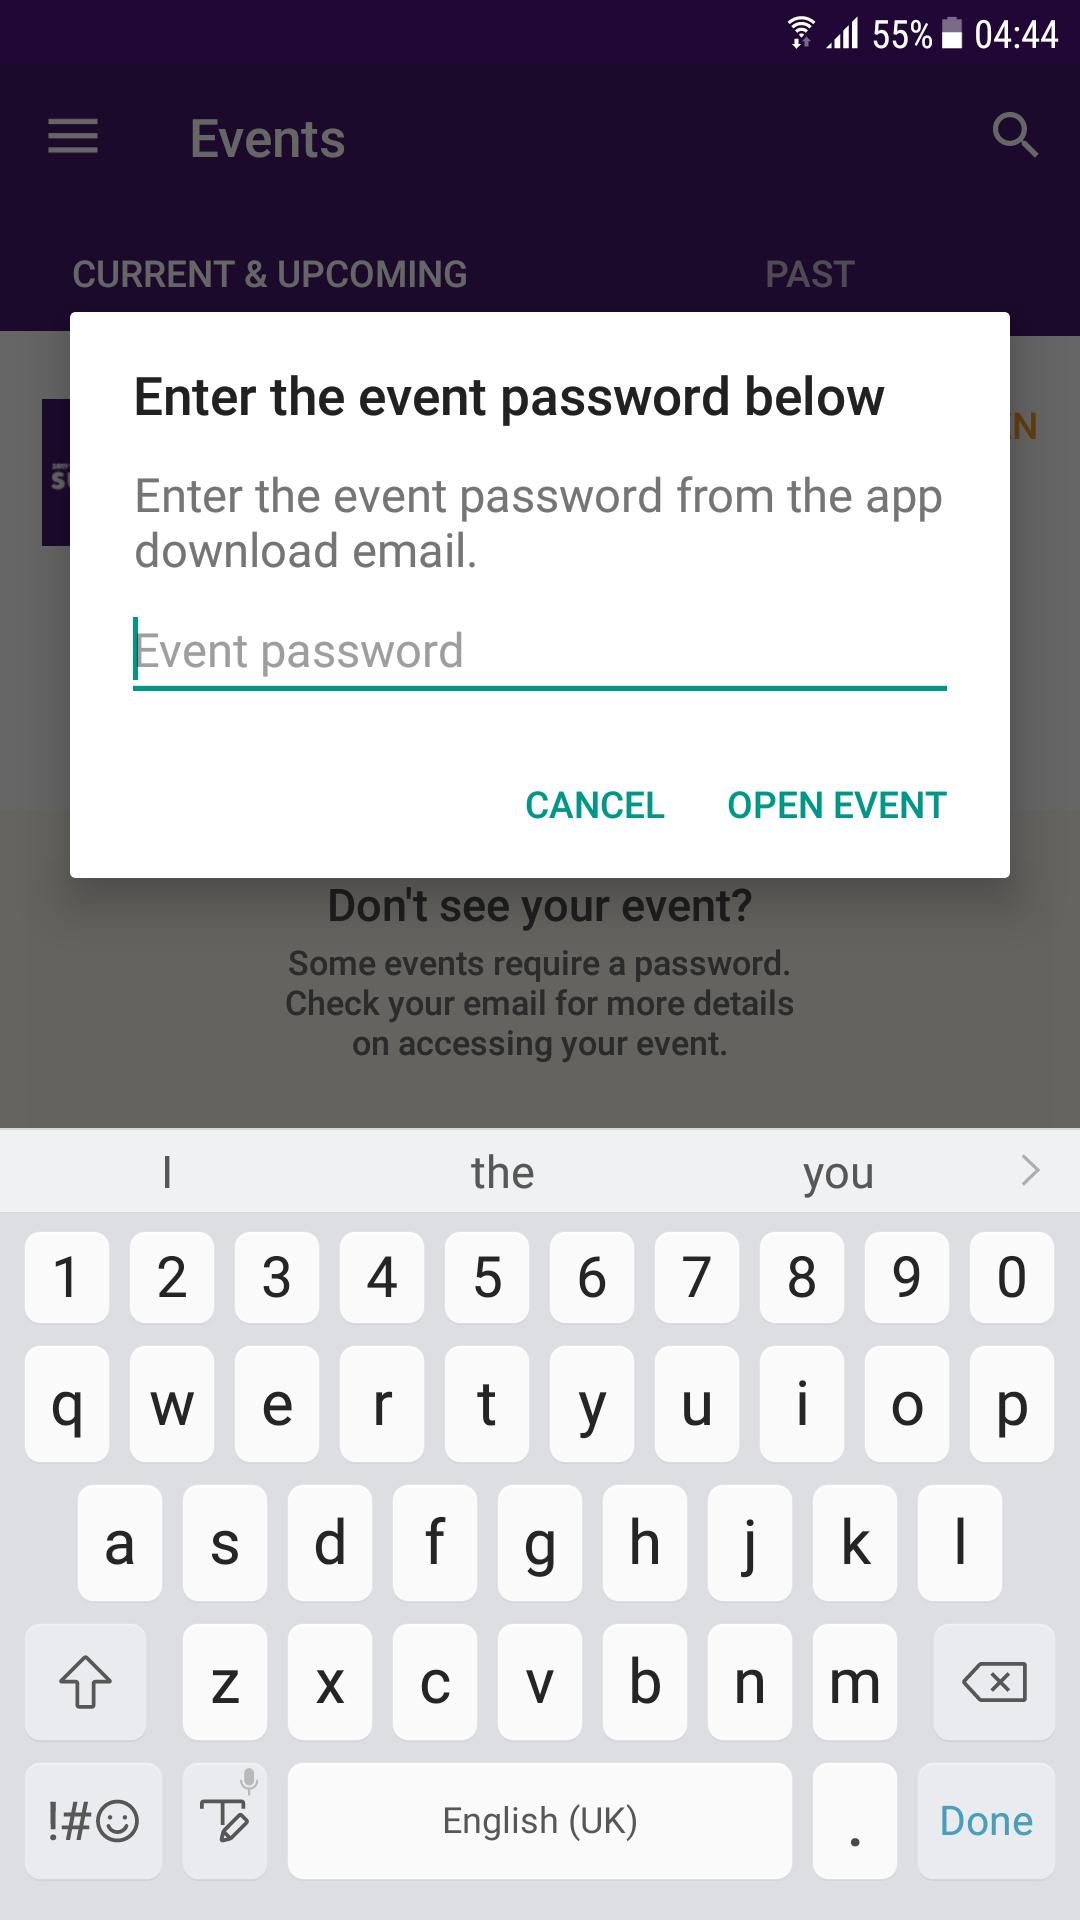 Metro by T-Mobile Events for Android - APK Download